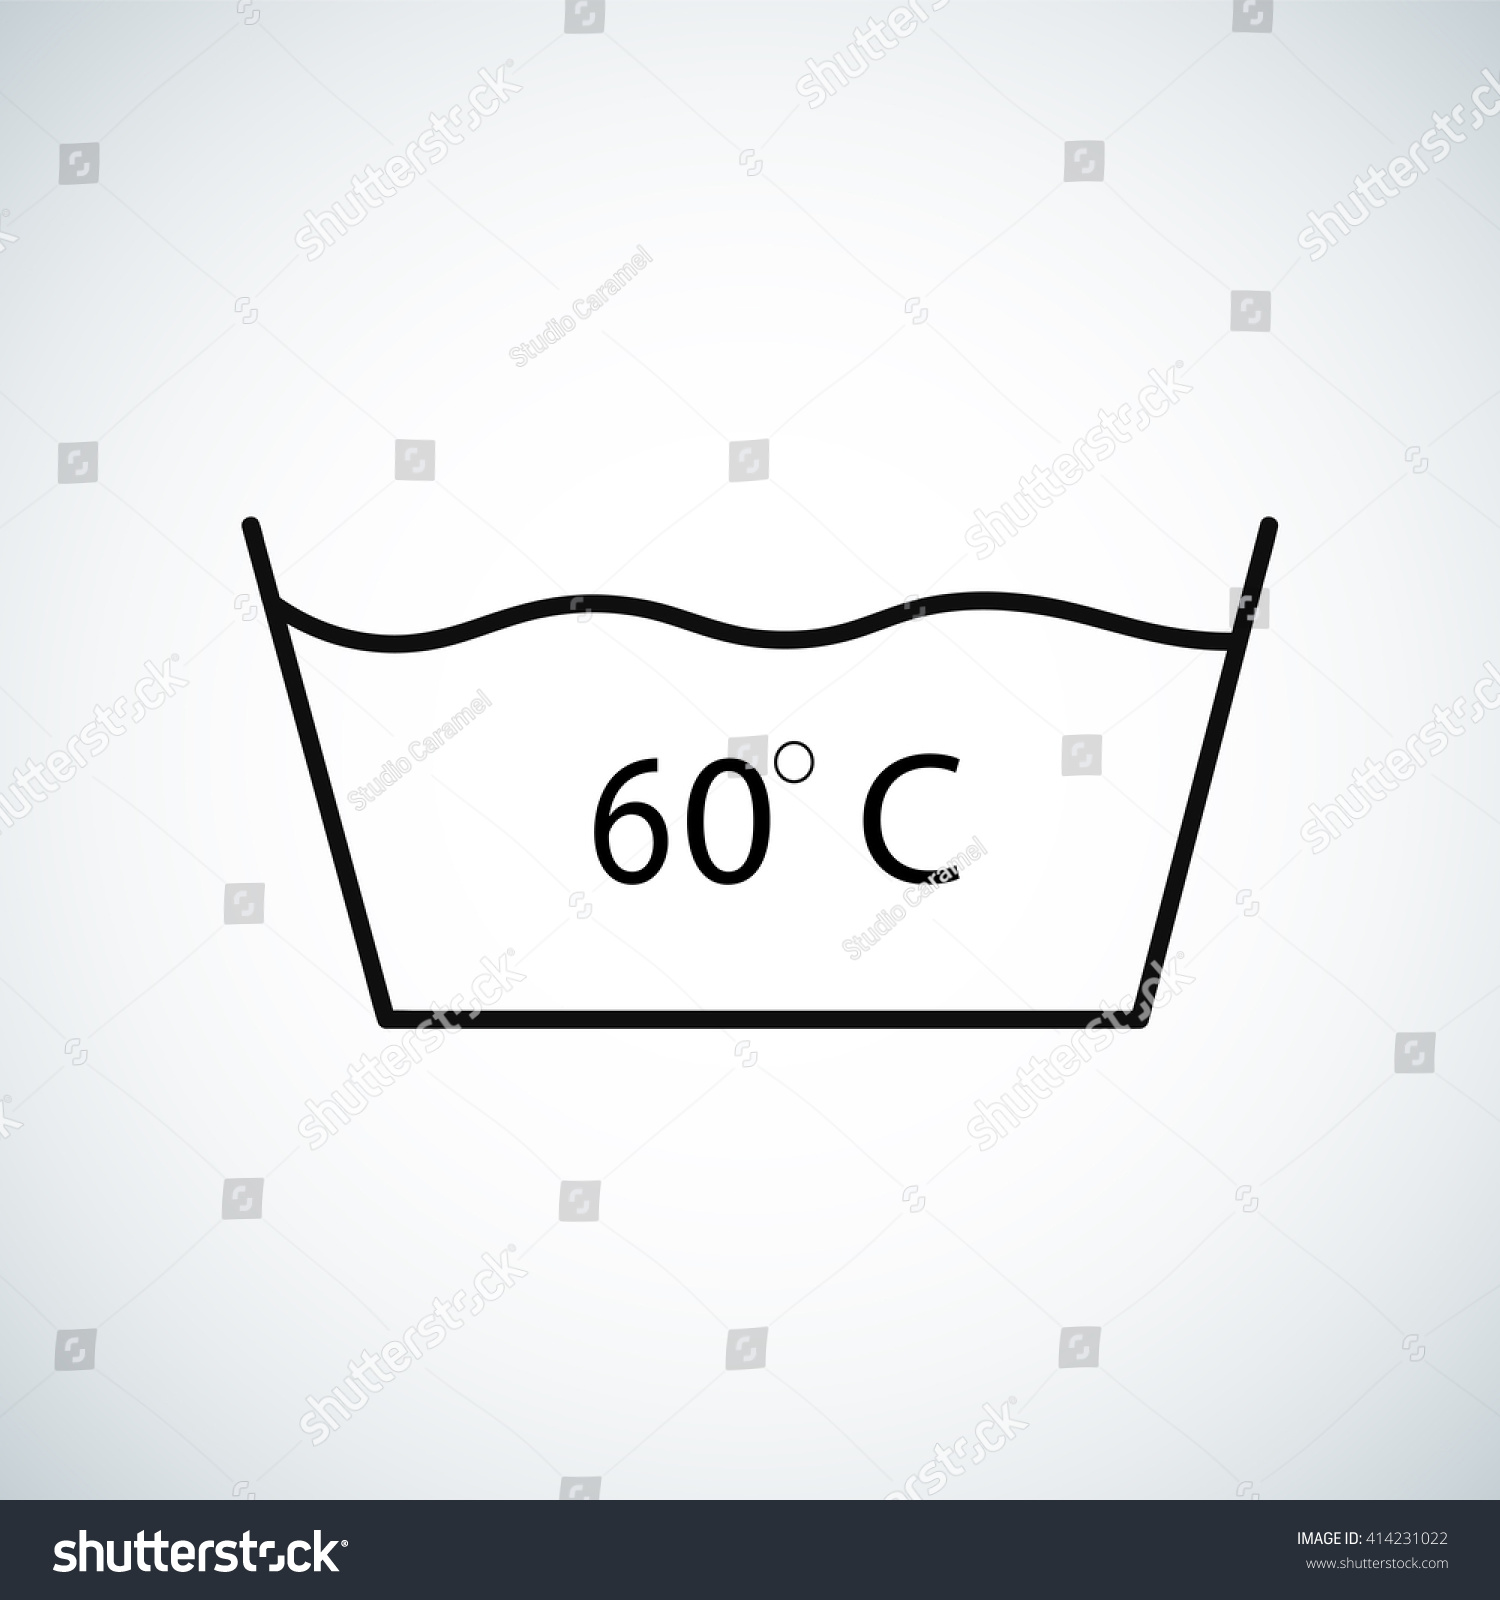 washing under 60 degrees celsius textile stock vector royalty free